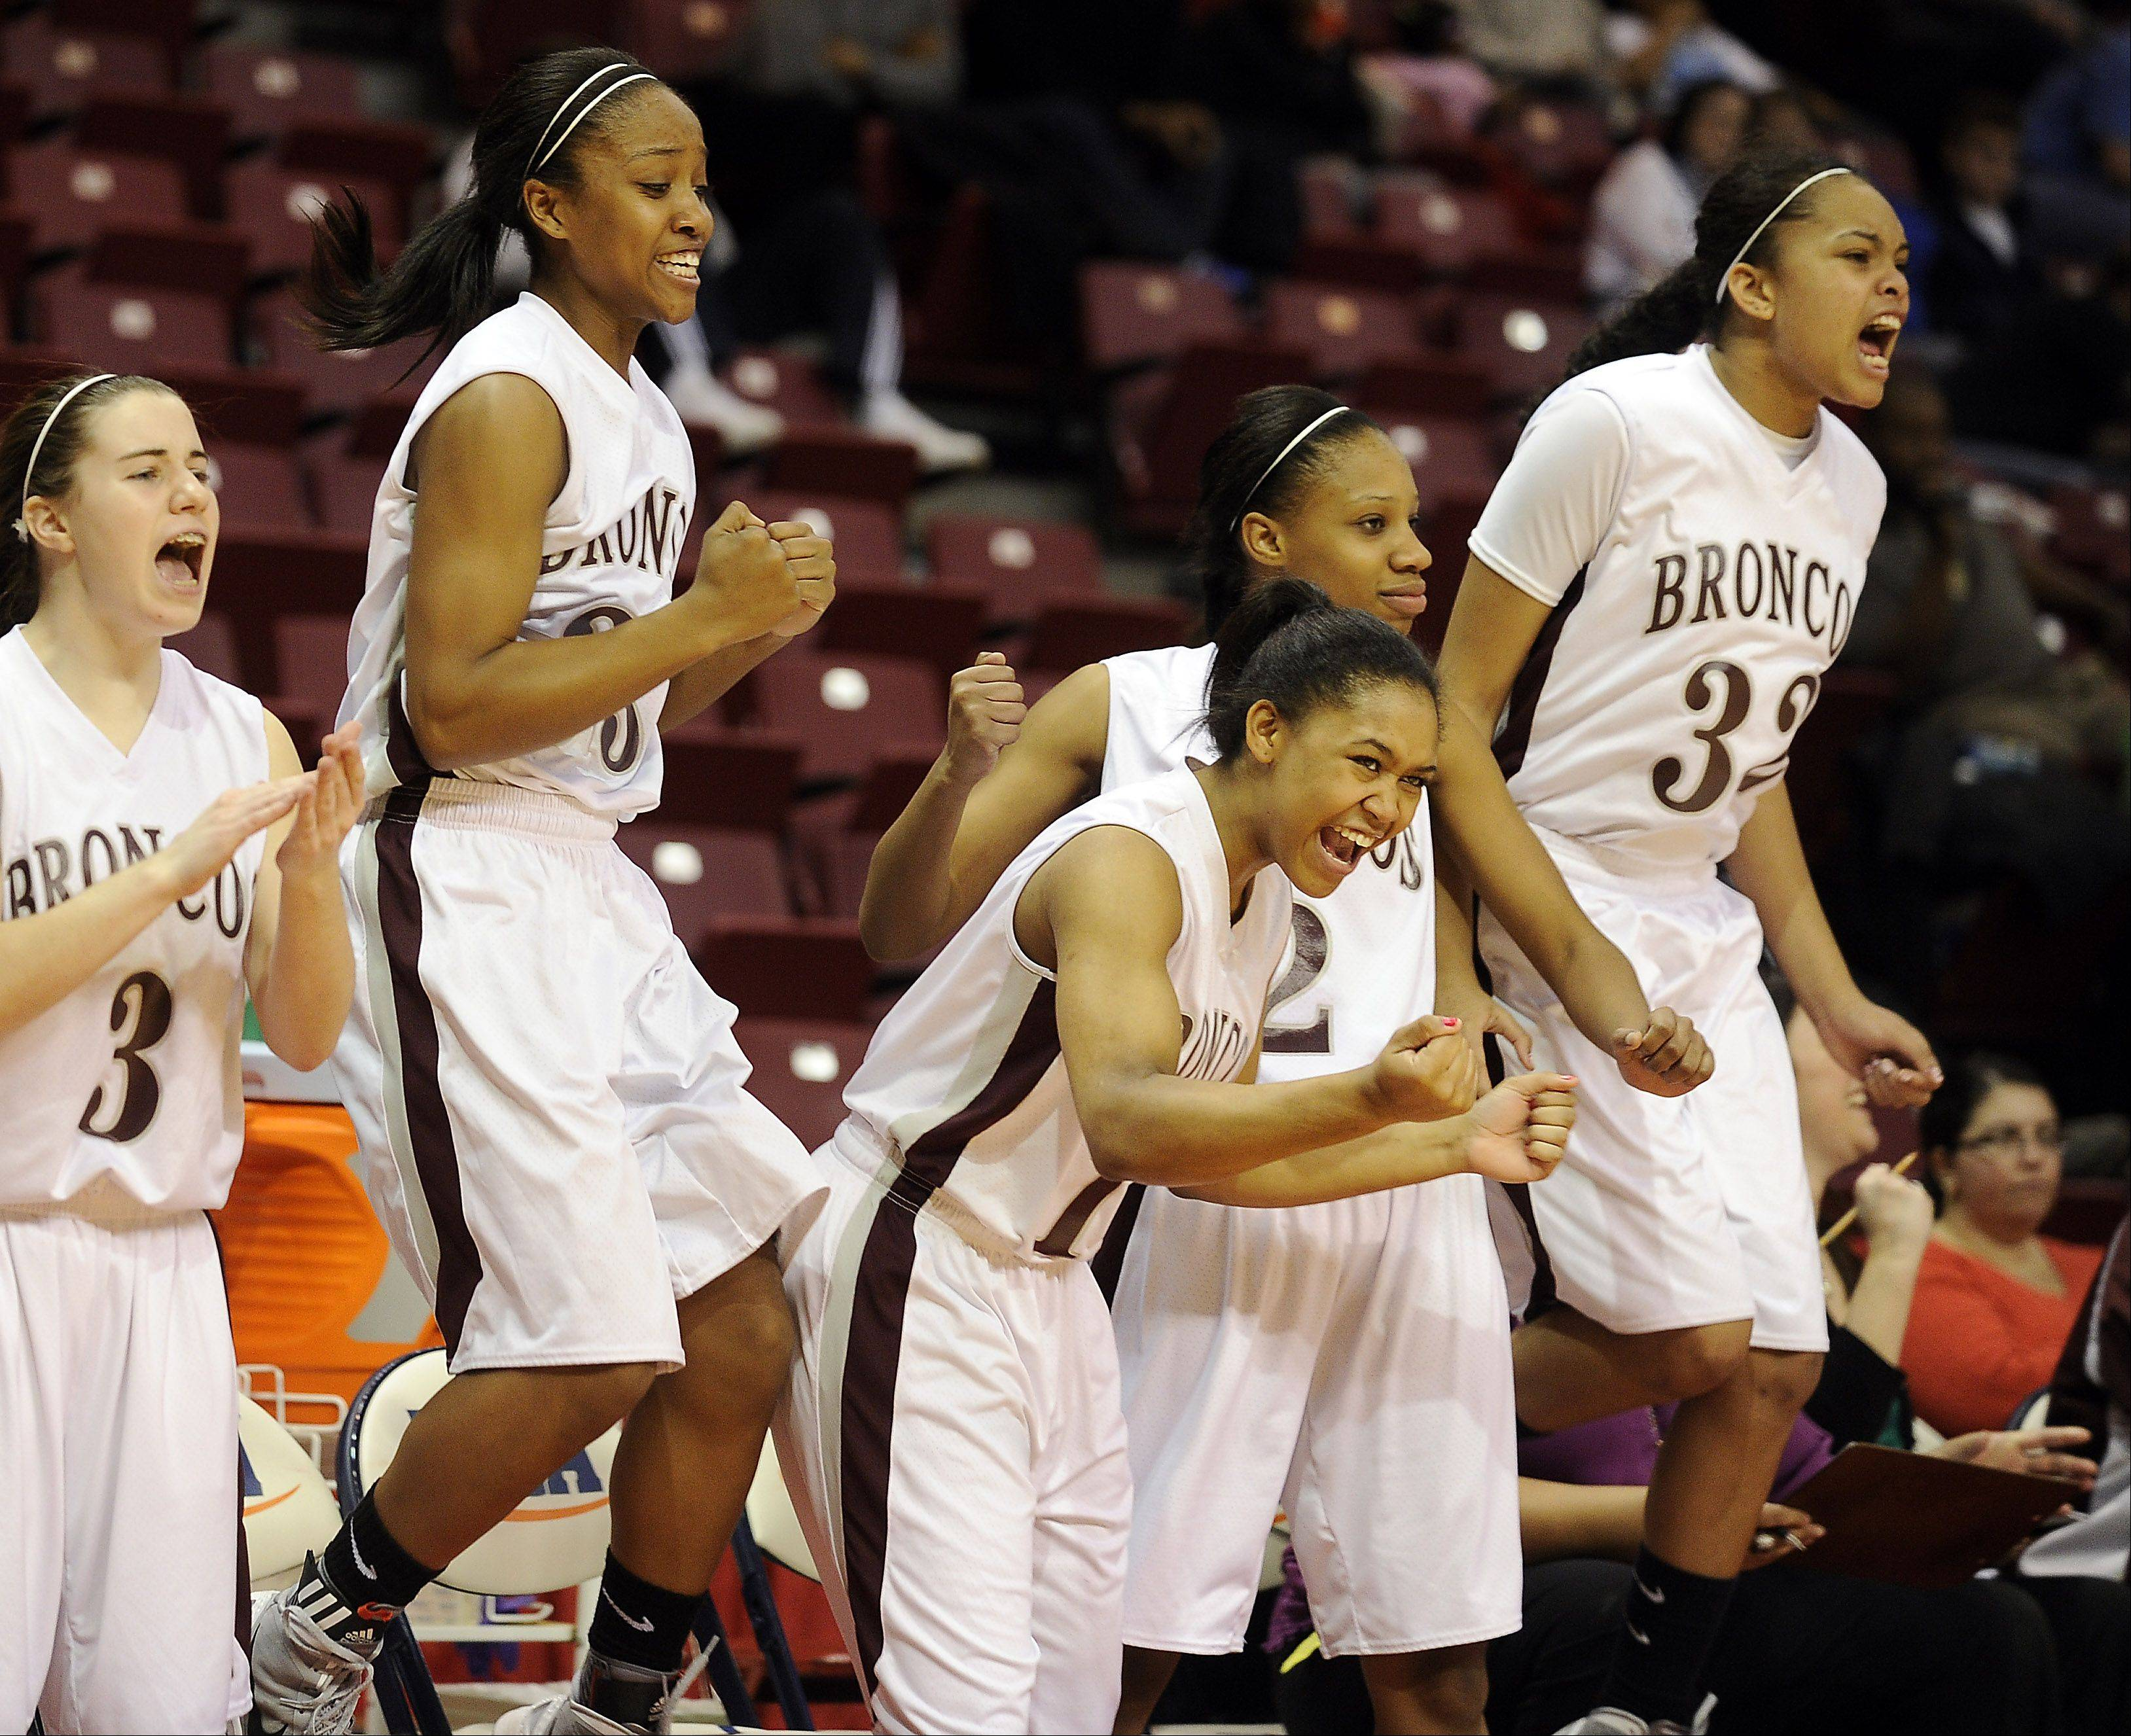 Montini's bench celebrates their victory over Hillcrest in the 2012 IHS	A Class 3A Girls Basketball Tournament in Normal, Illinois on Friday.